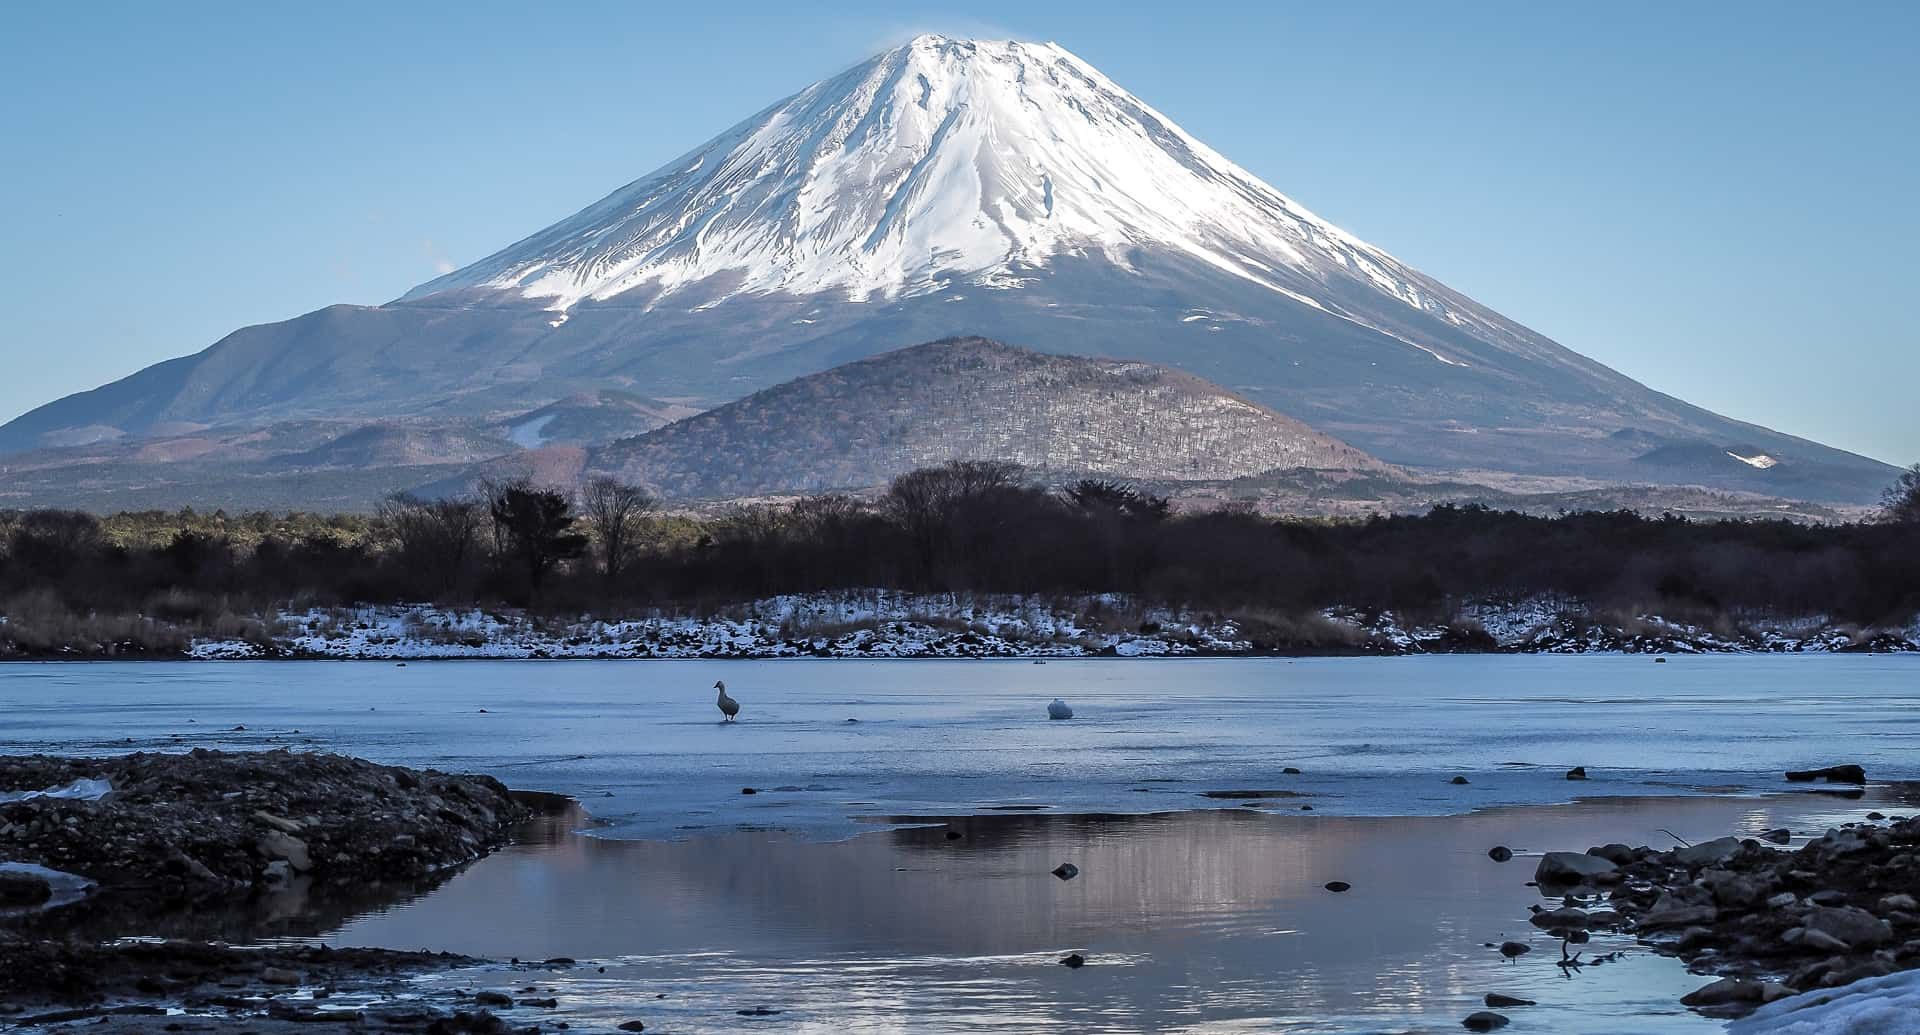 10 Close-Up Spots to Seek the Best View of Mt. Fuji (and how to get to them)